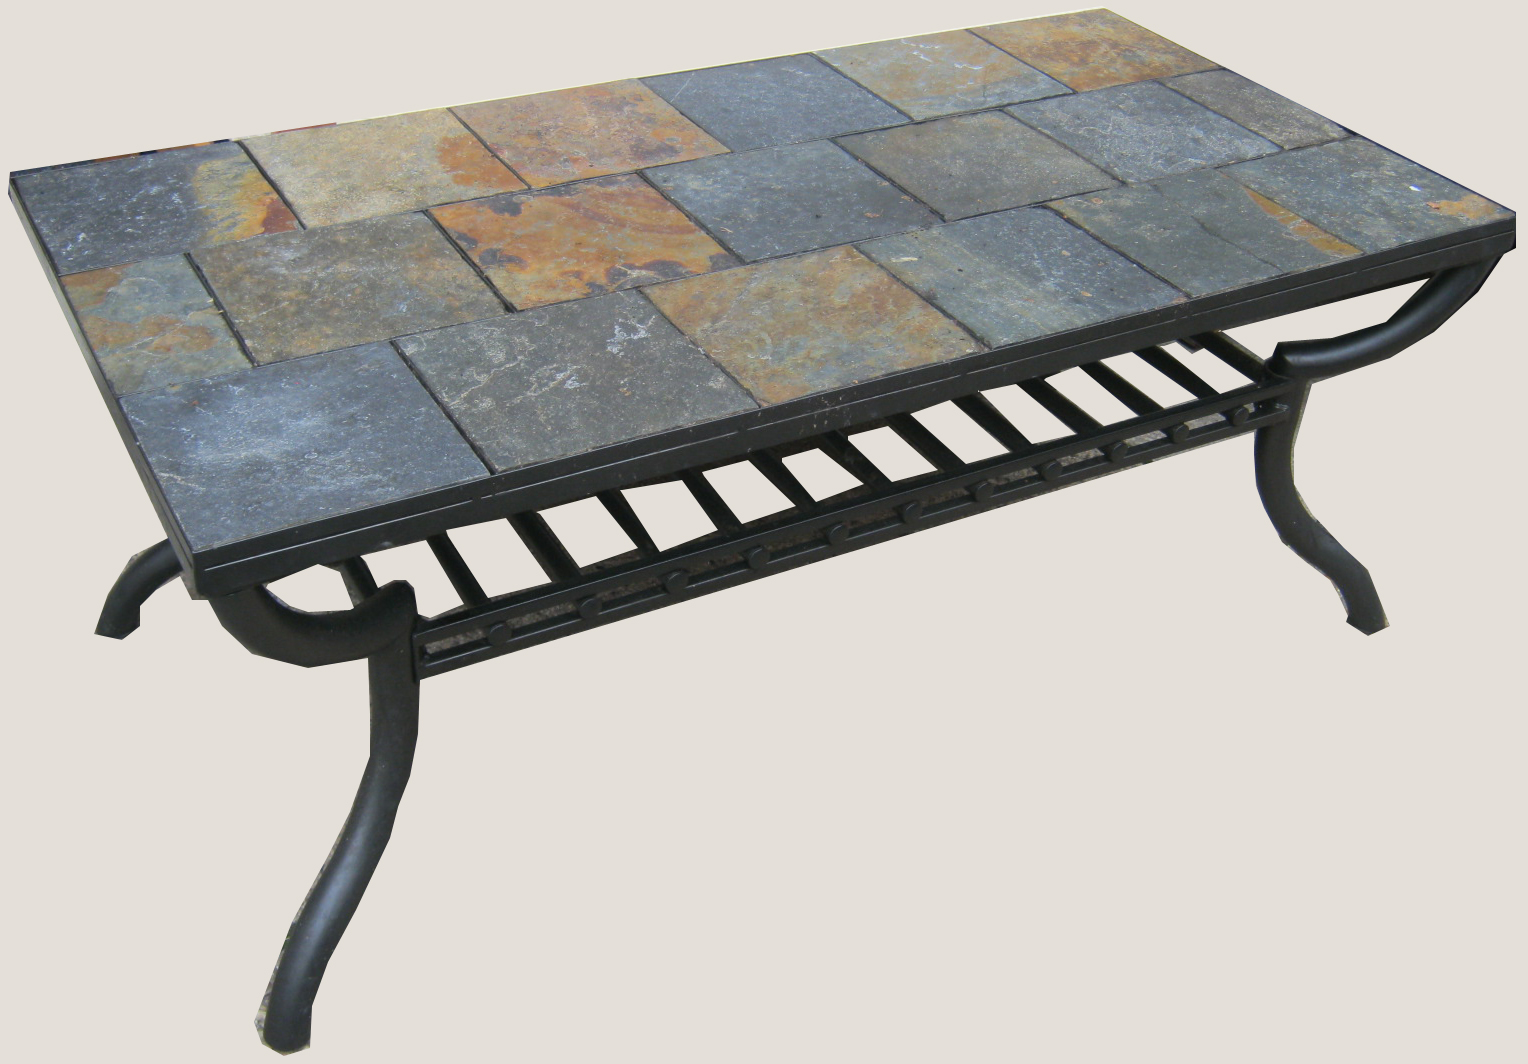 Slate top coffee tables Slate top coffee tables